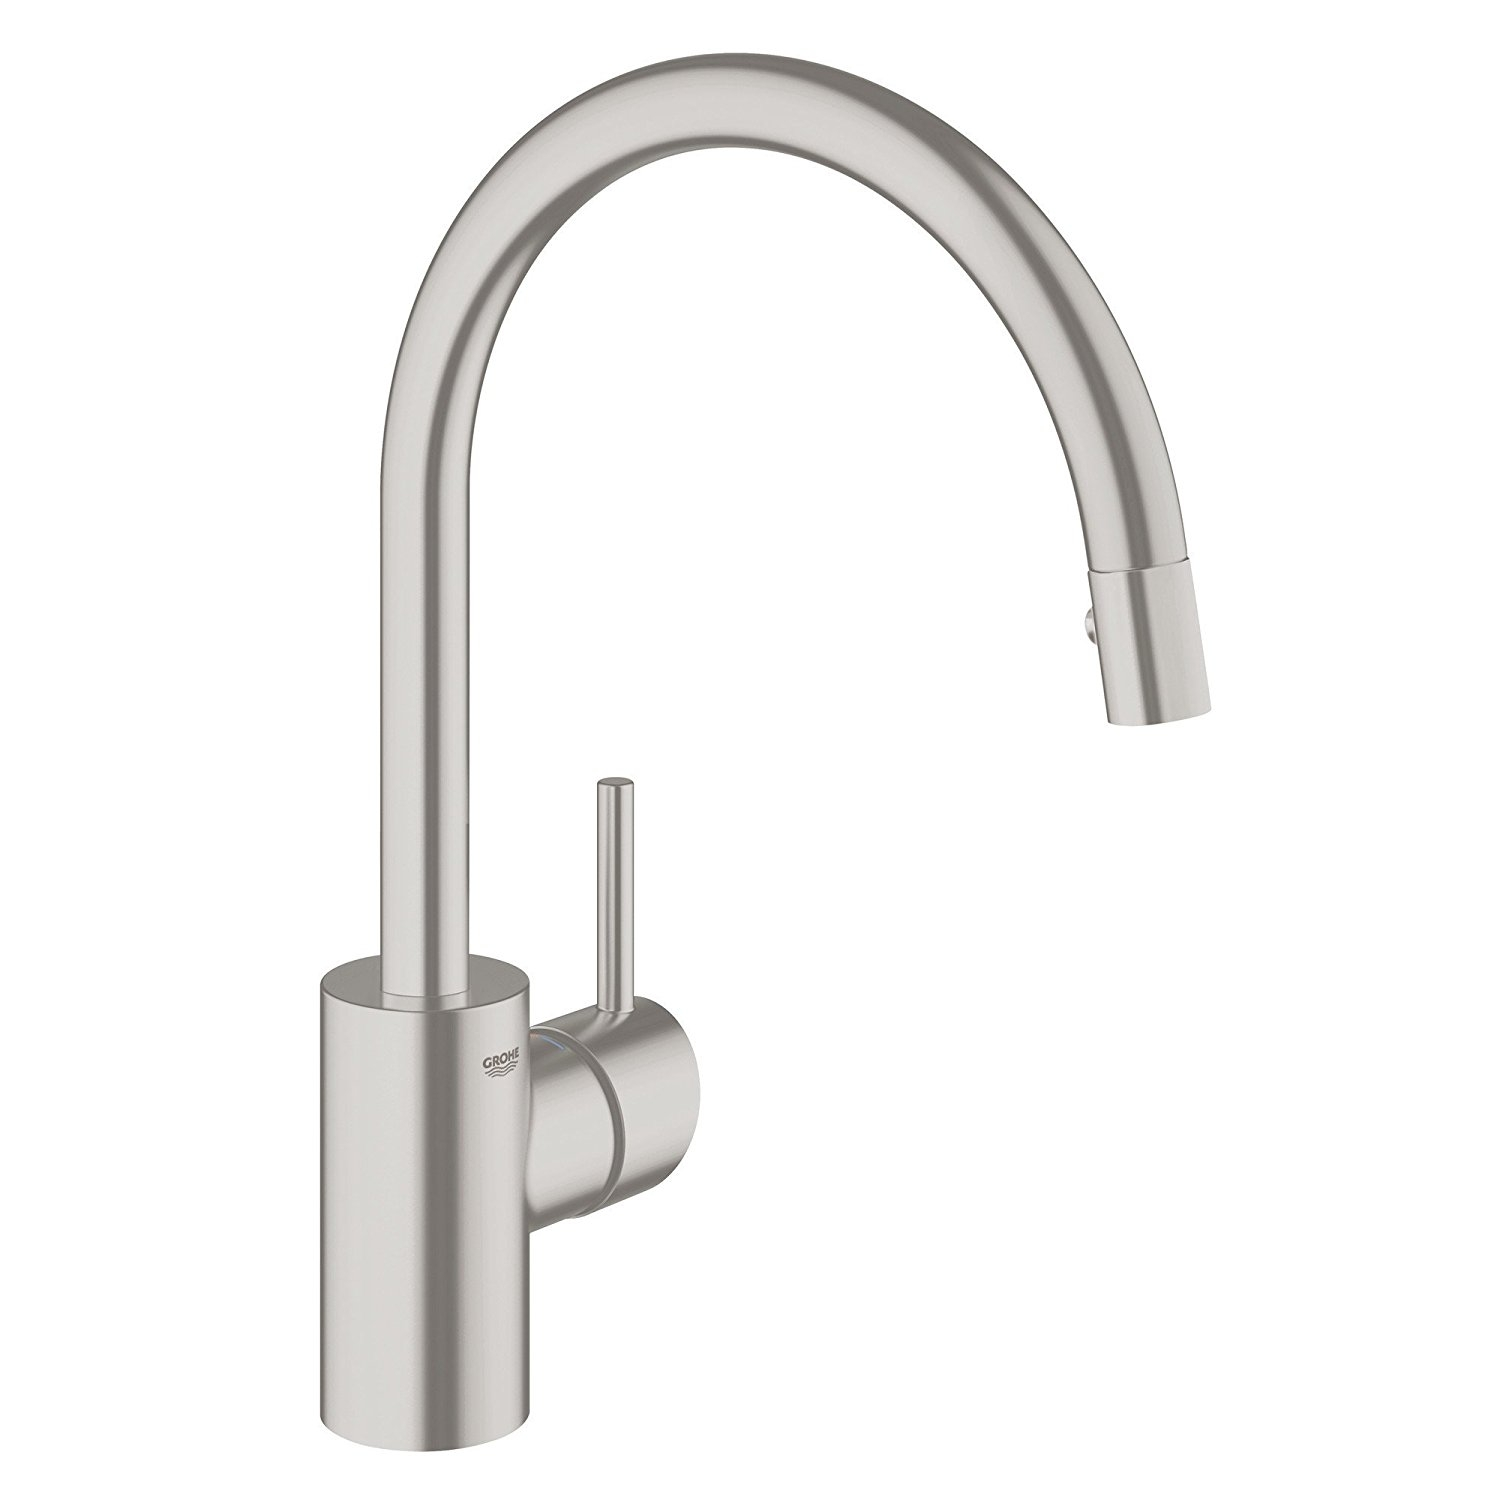 Ideas, grohe ladylux plus faucet grohe ladylux plus faucet kitchen grohe cartridge replacement pantry kitchen cabinets 1500 x 1500  .